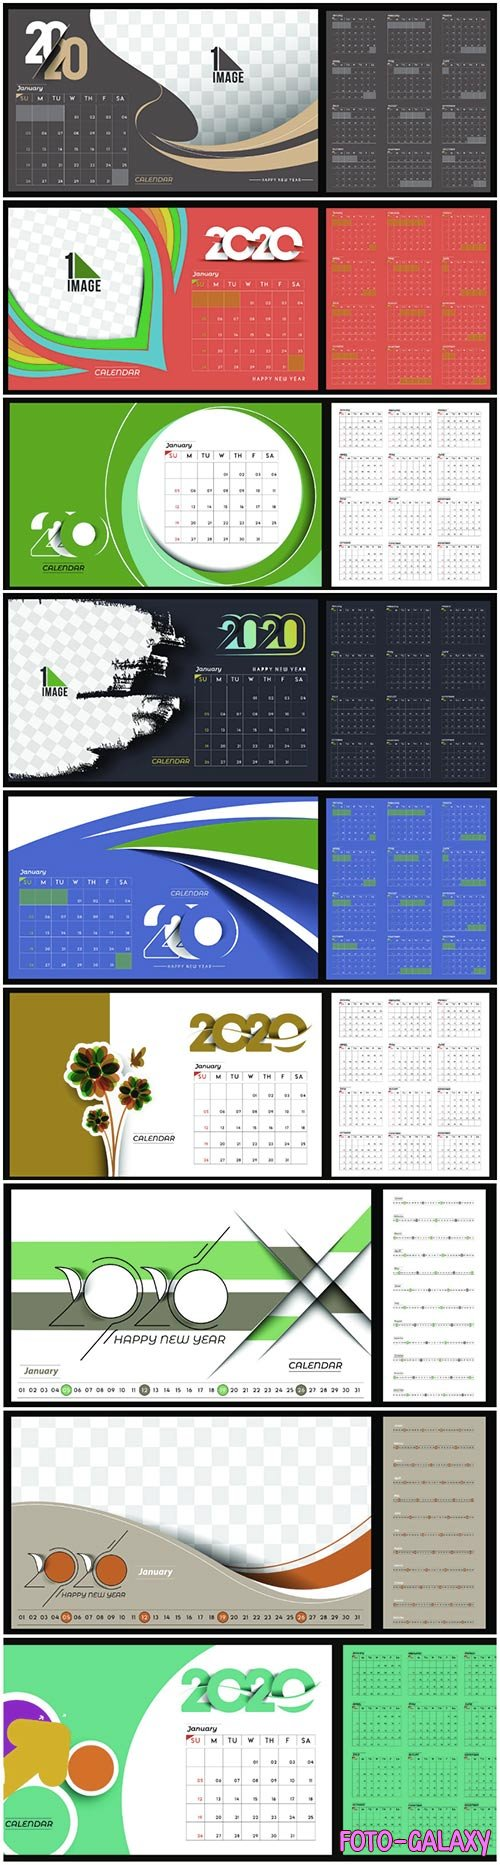 Happy new year 2020 Calendar